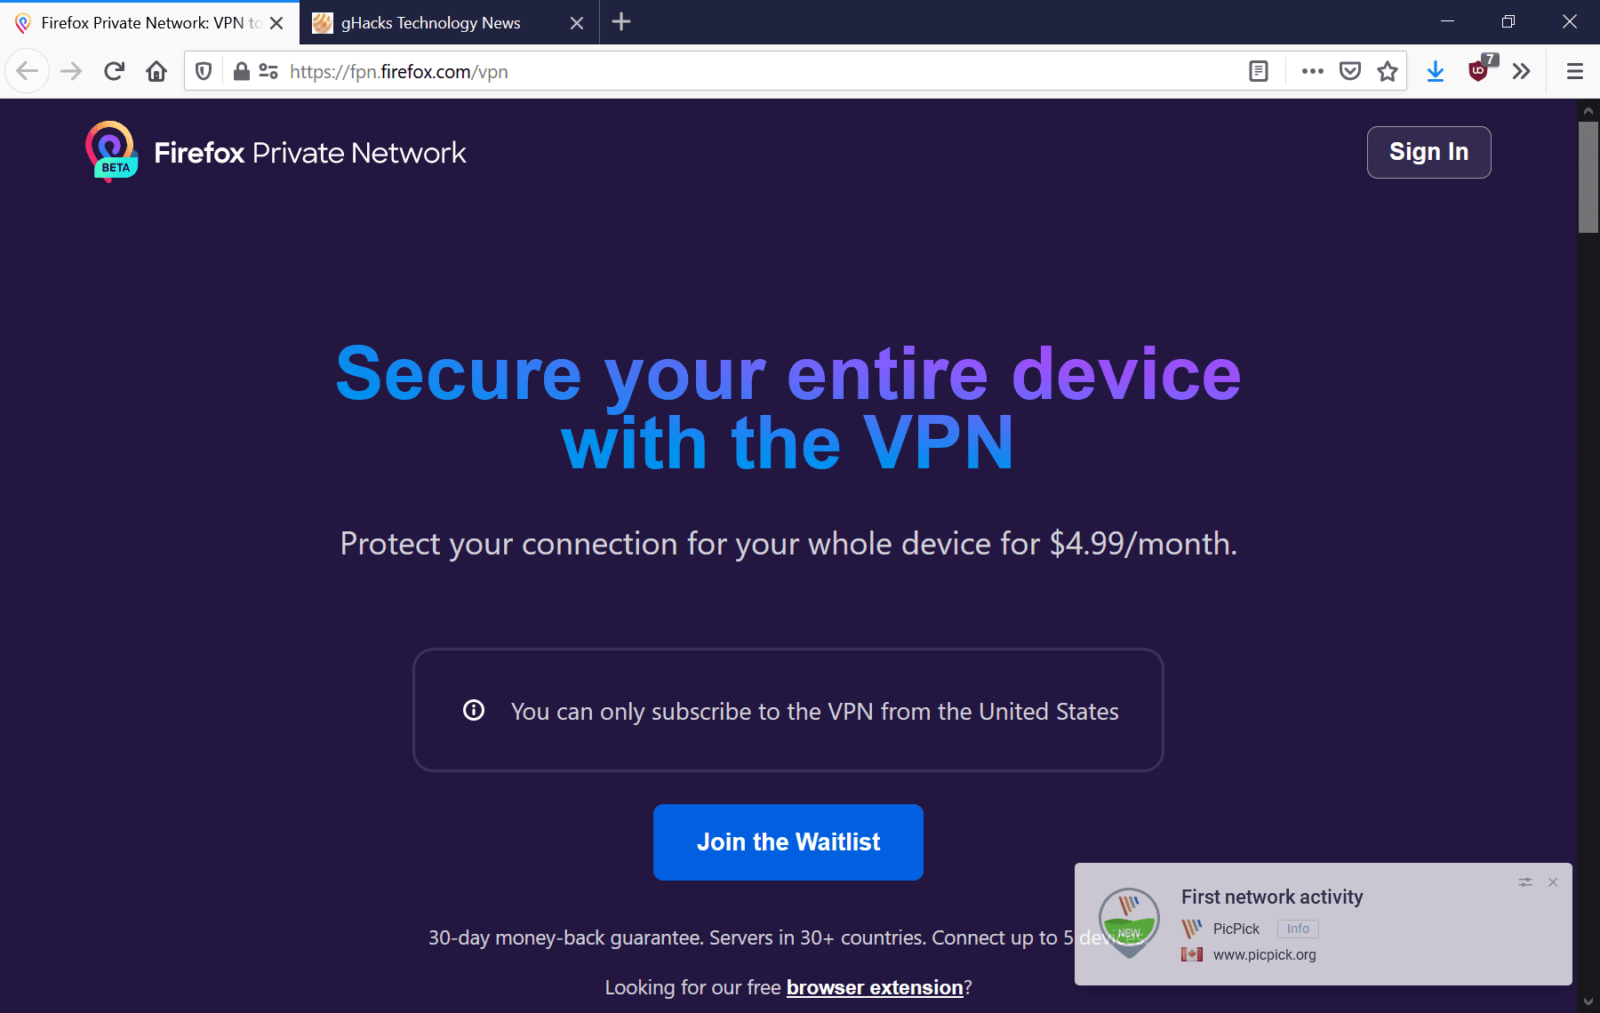 Mozilla will launch Mozilla VPN in the coming weeks